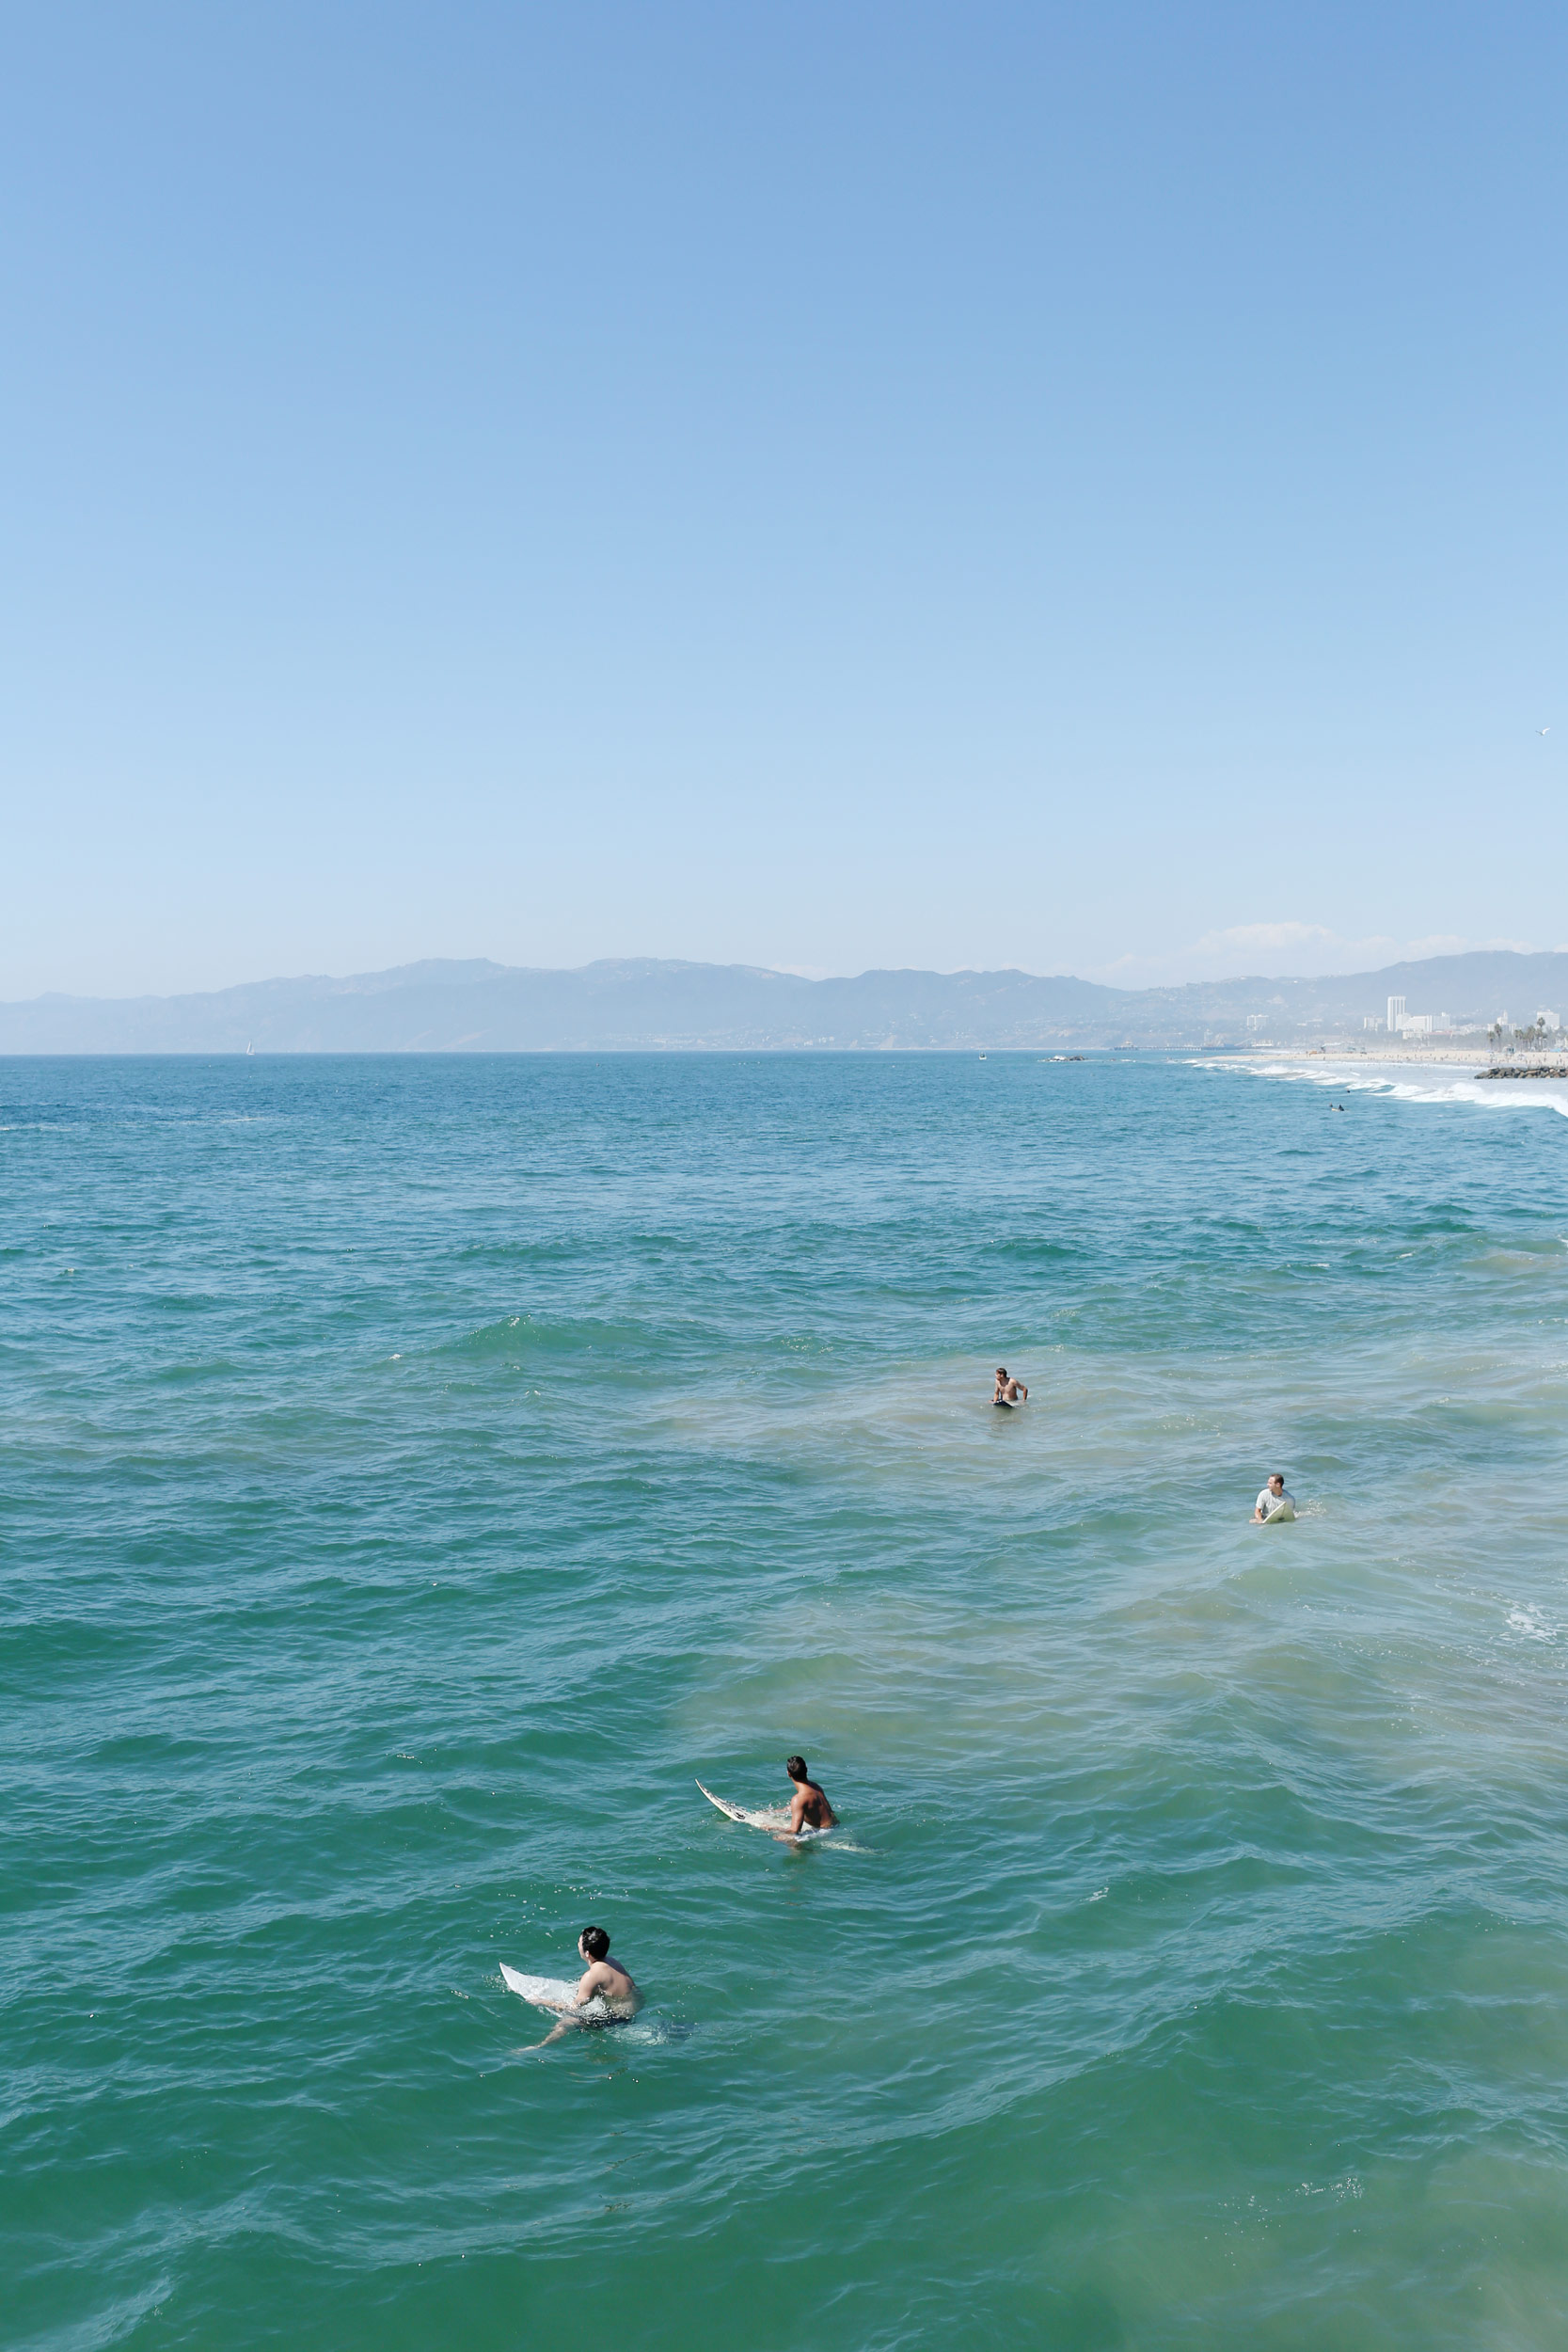 Surfers in the ocean. Kimberly Genevieve lifestyle photographer Los Angeles